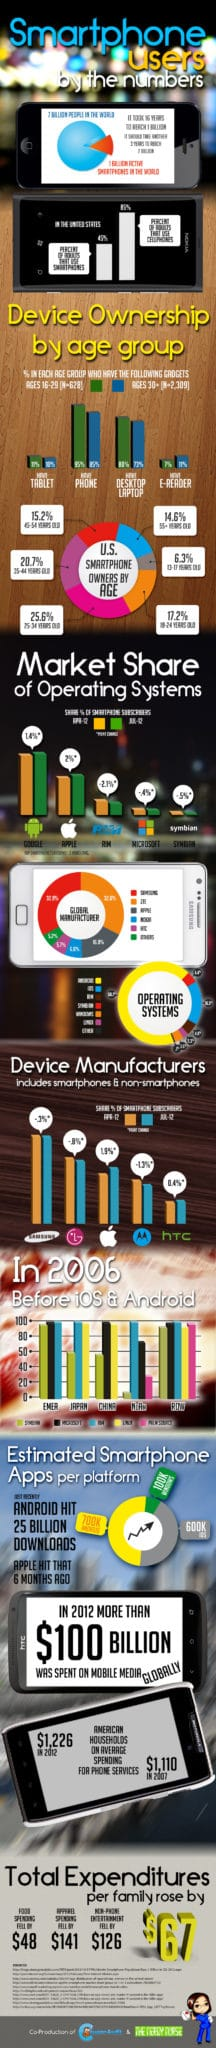 smartphones by the numbers infographic